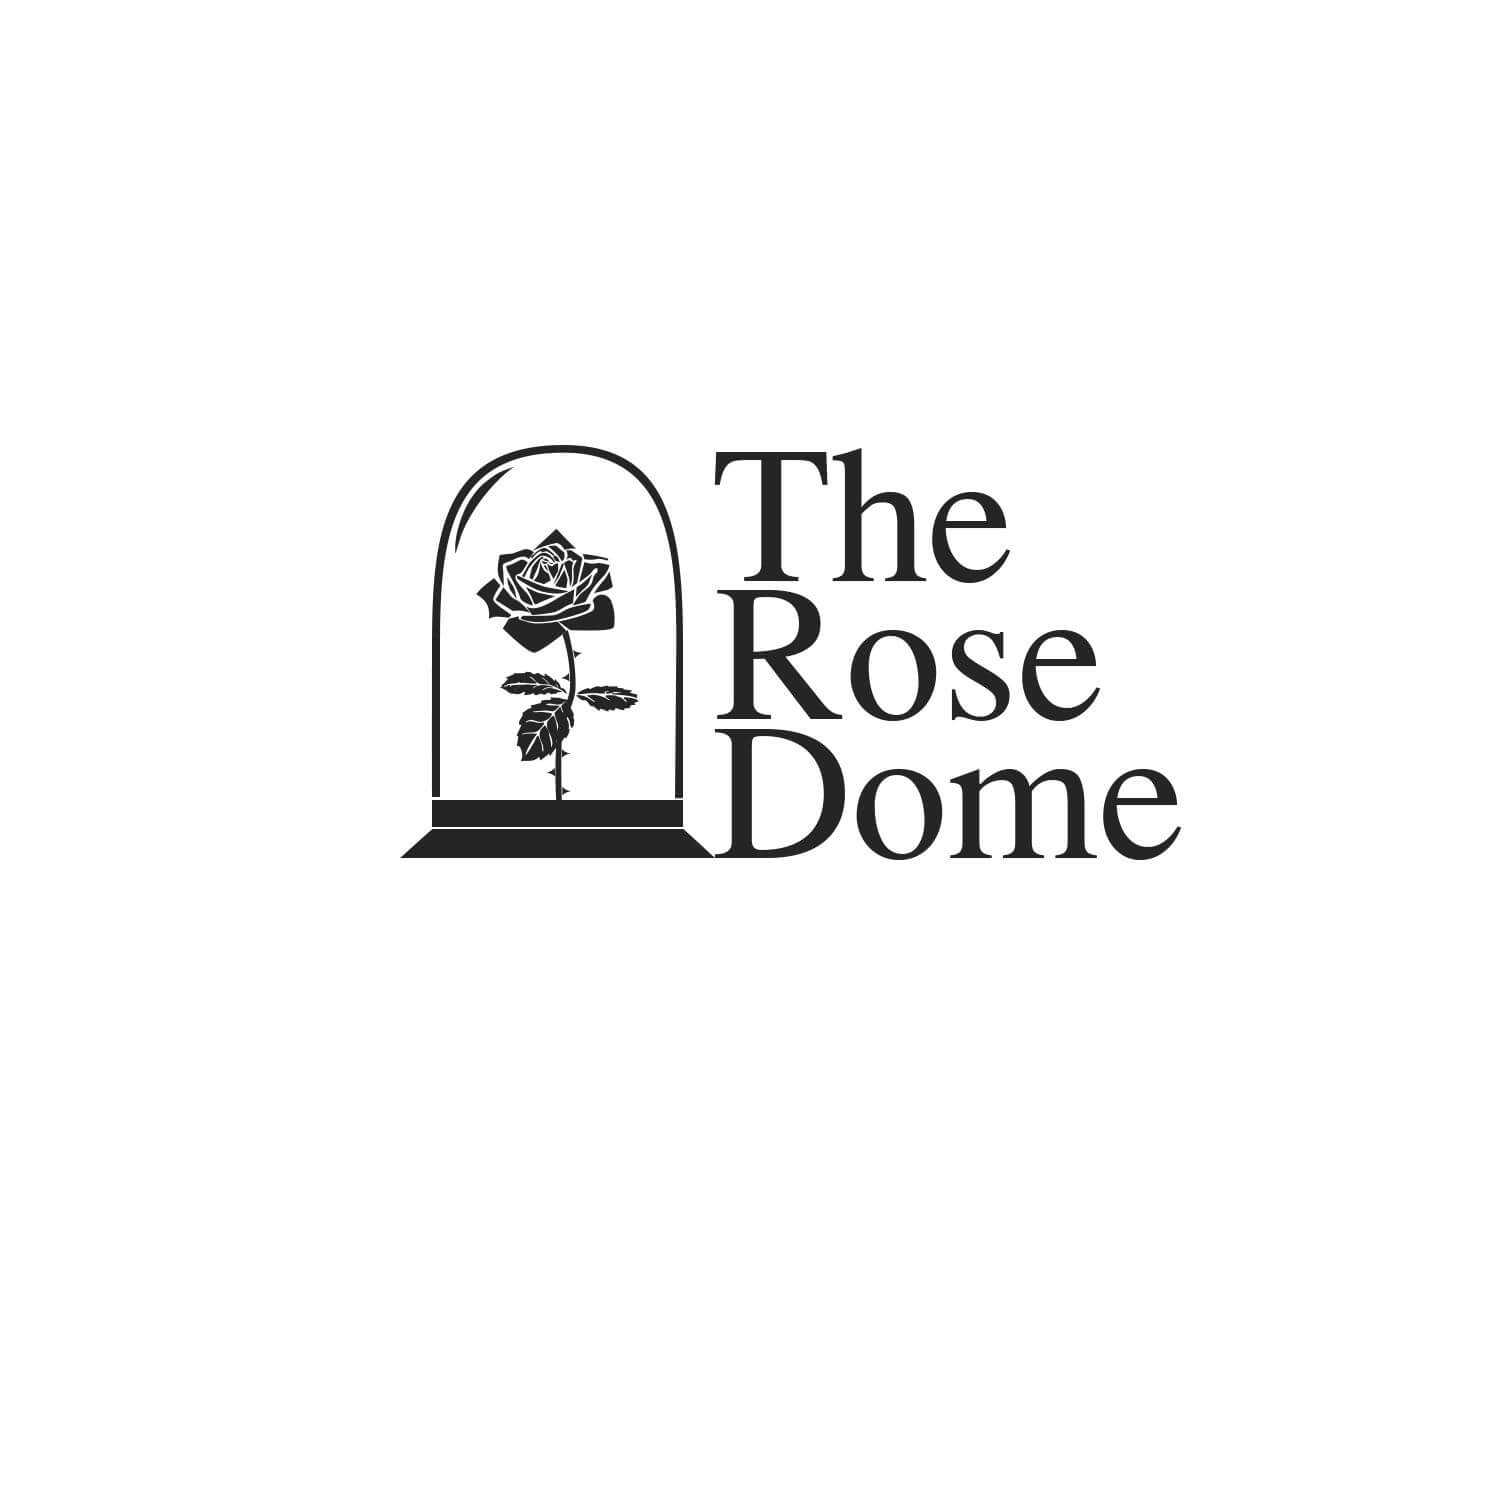 TheRoseDome